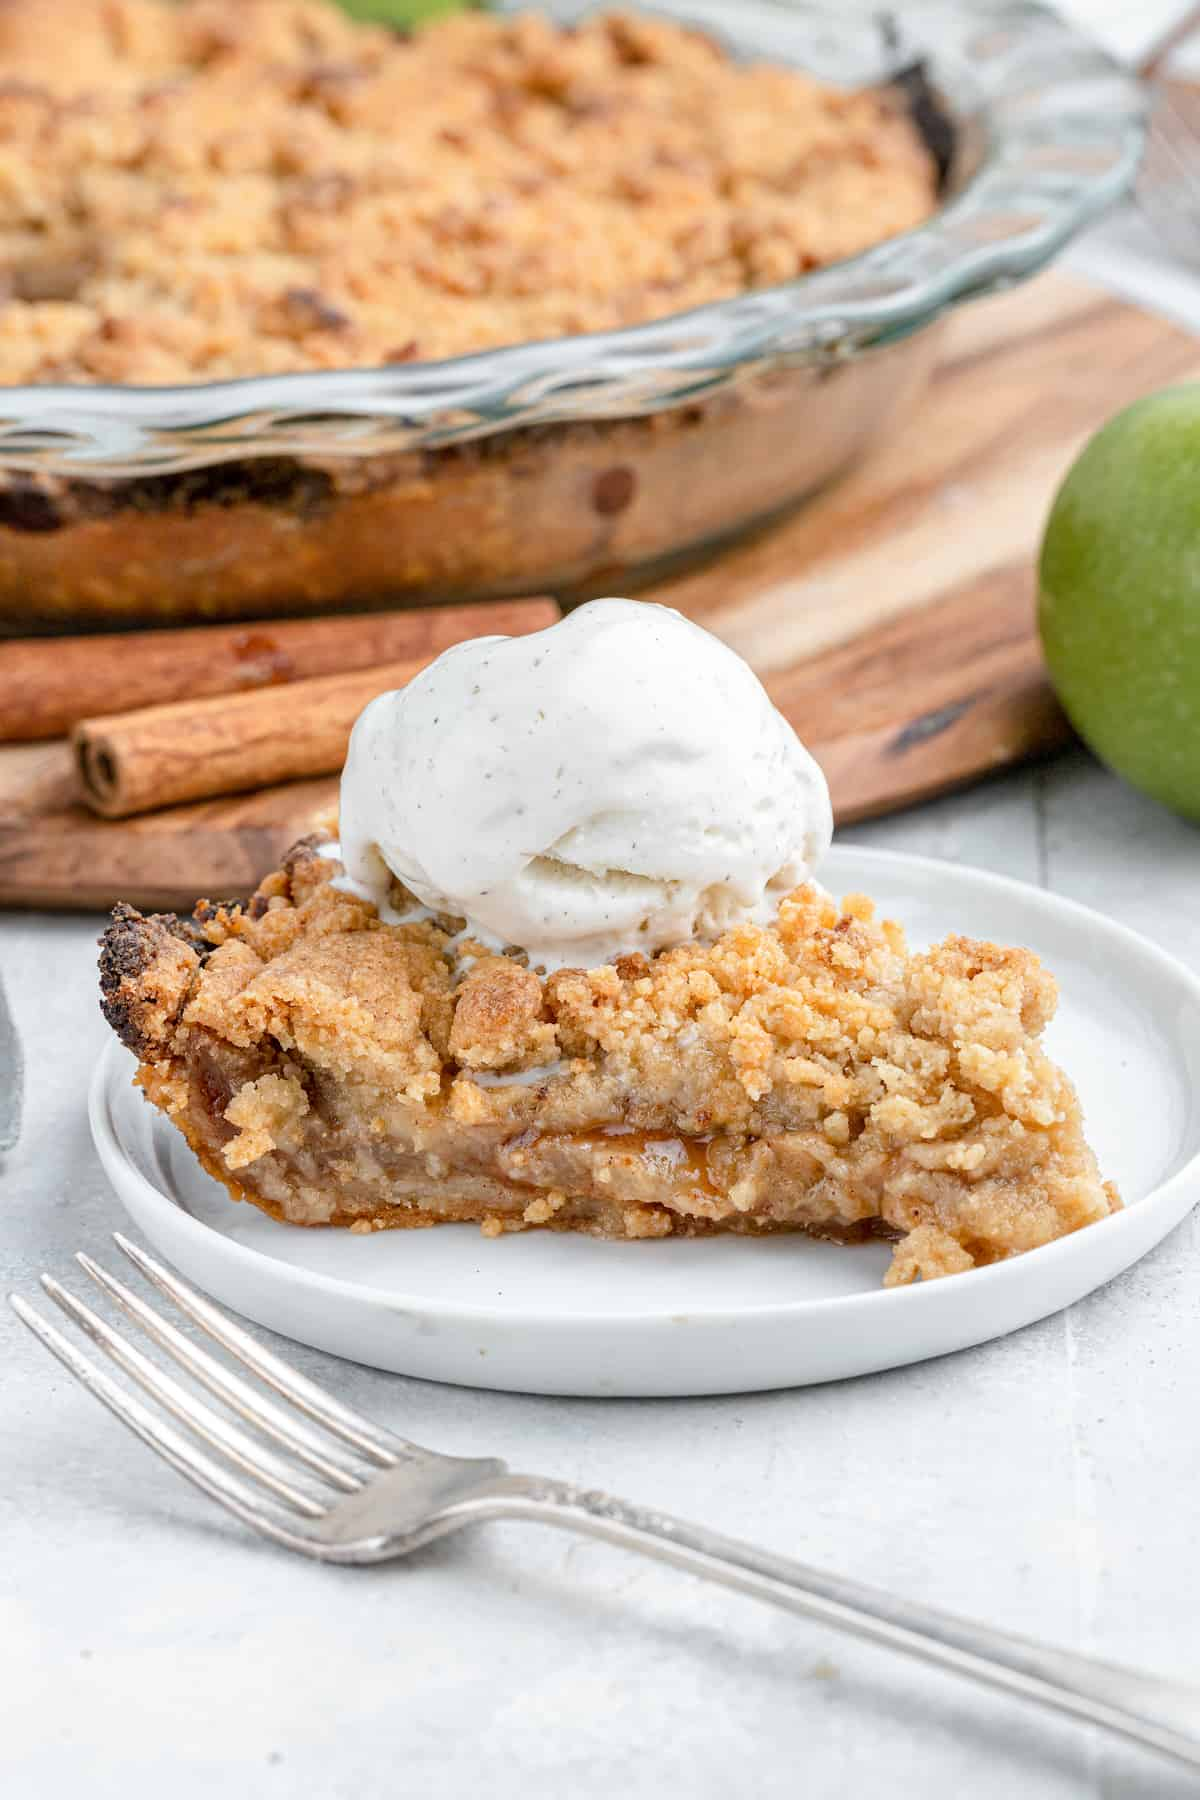 close up on a slice of dutch apple pie with ice cream and cinnamon sticks